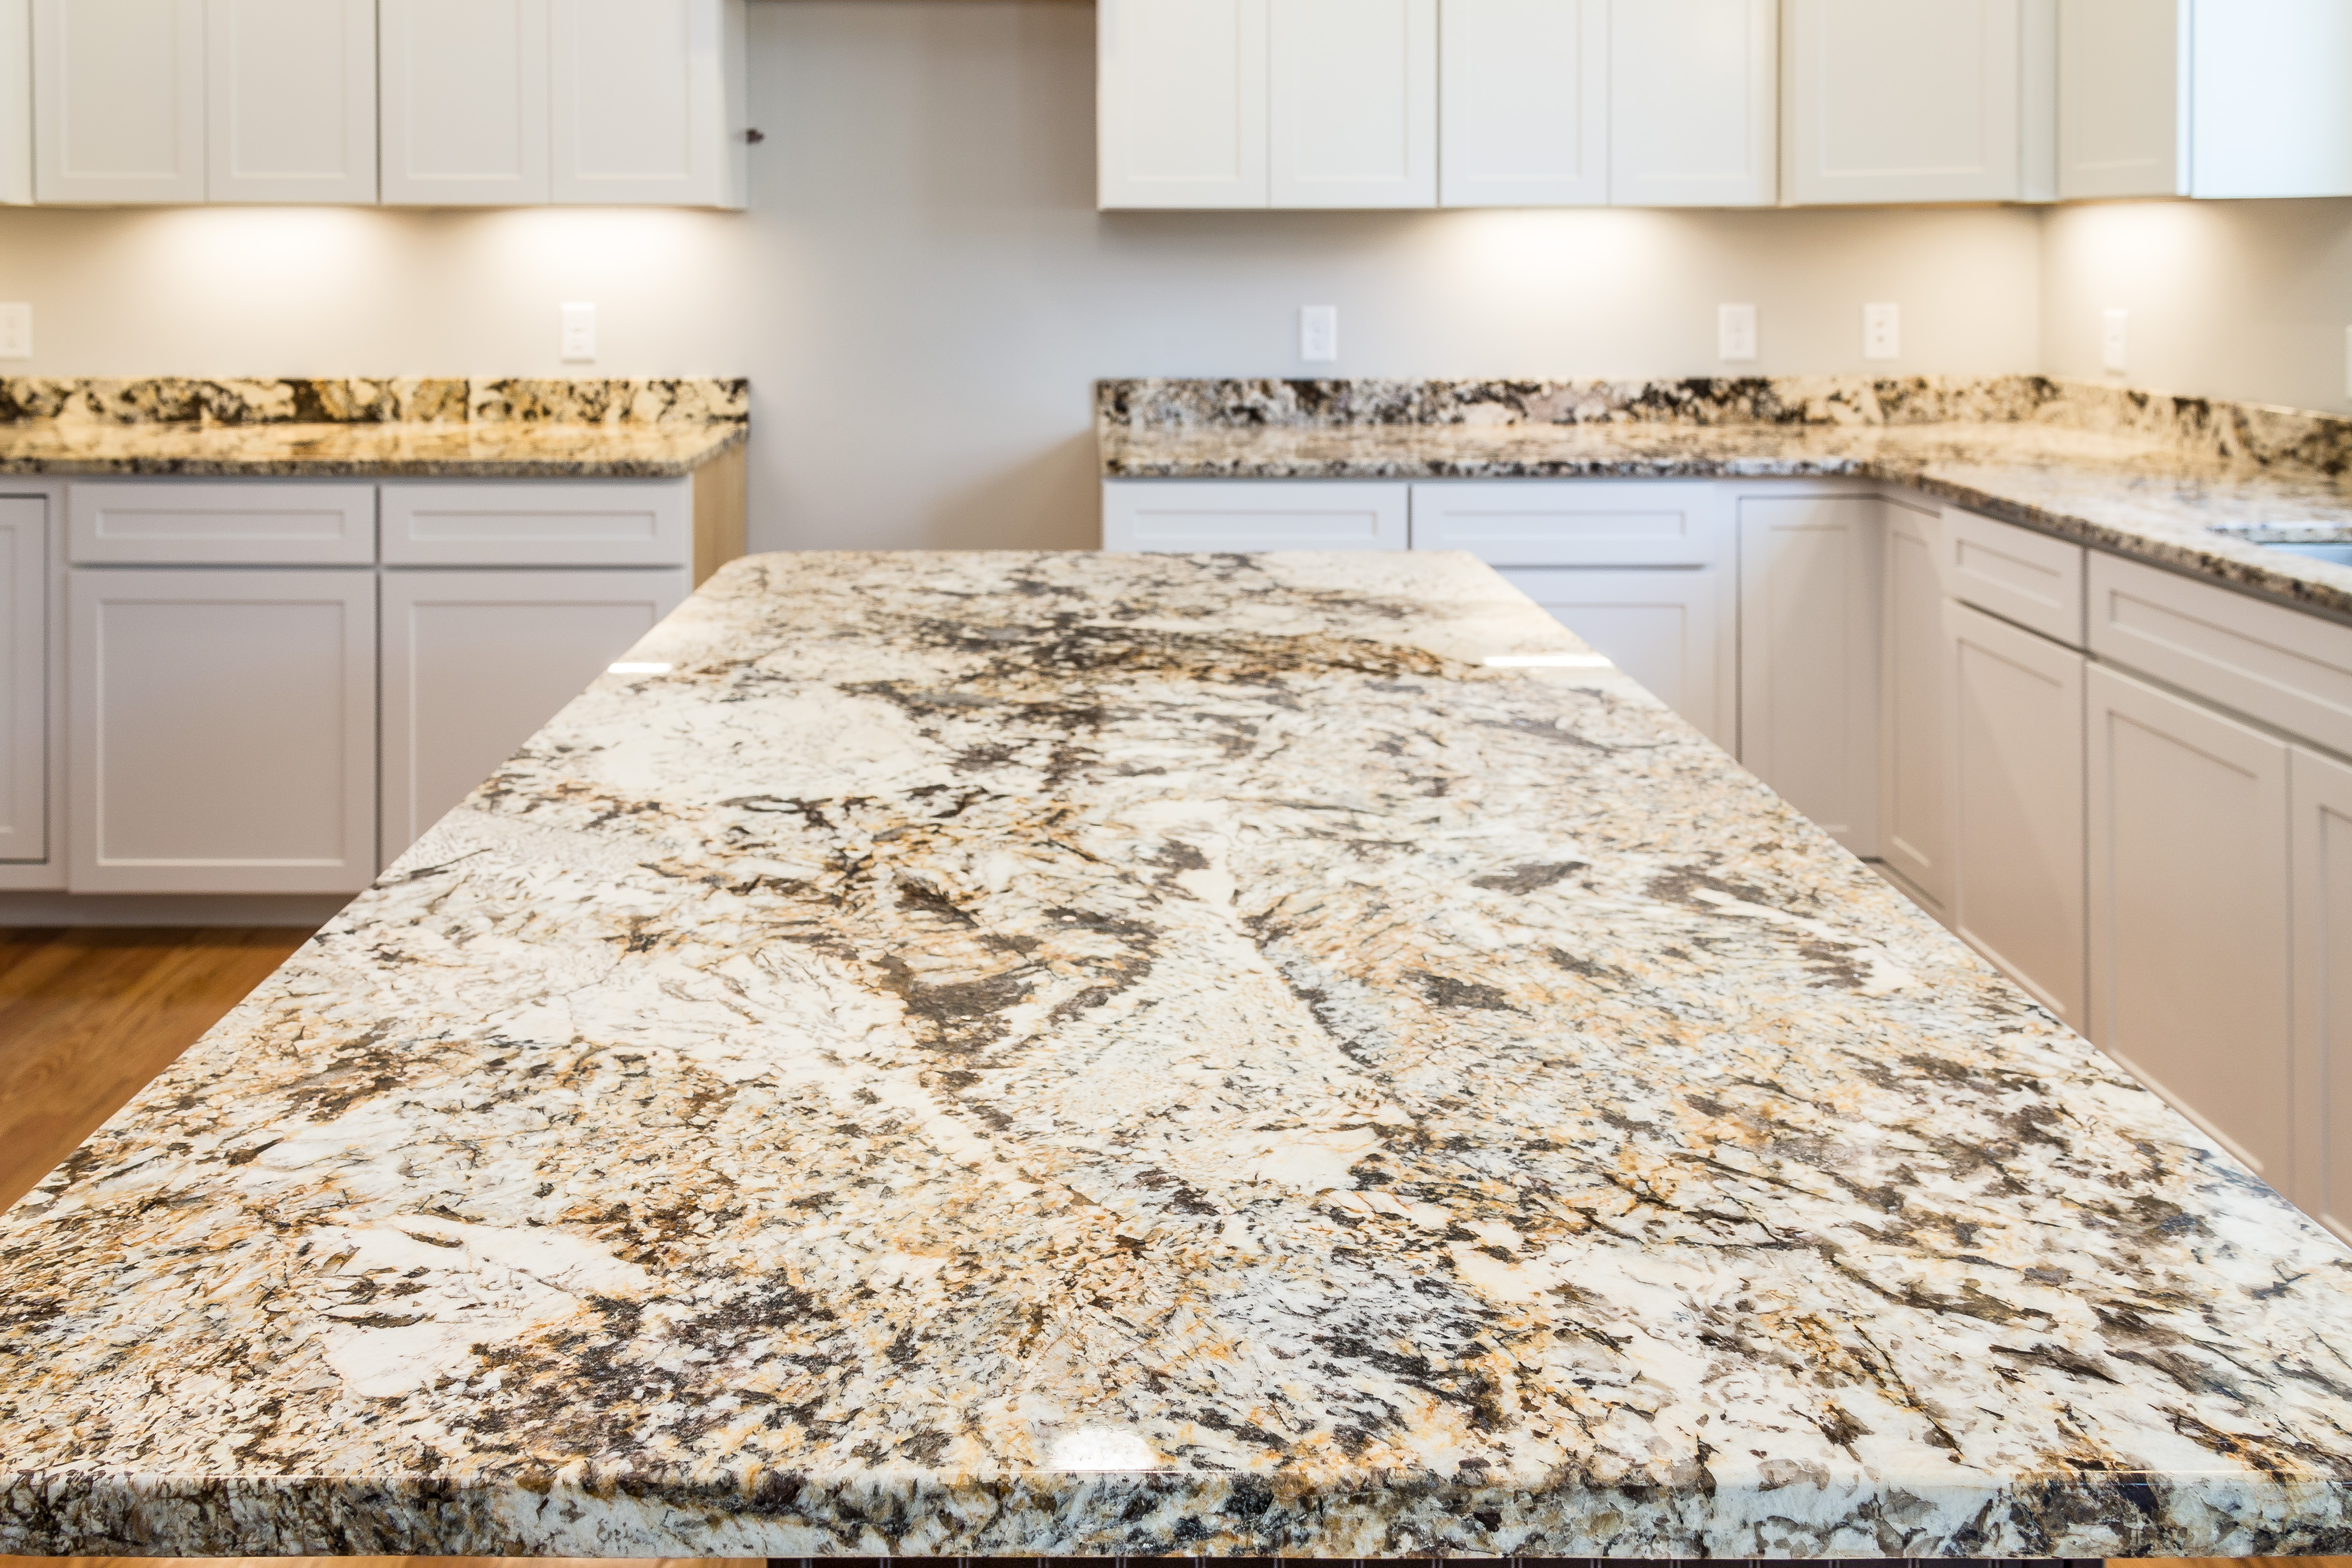 Granite vs quartz quartz vs granite countertops heat for Quartz countertops or granite